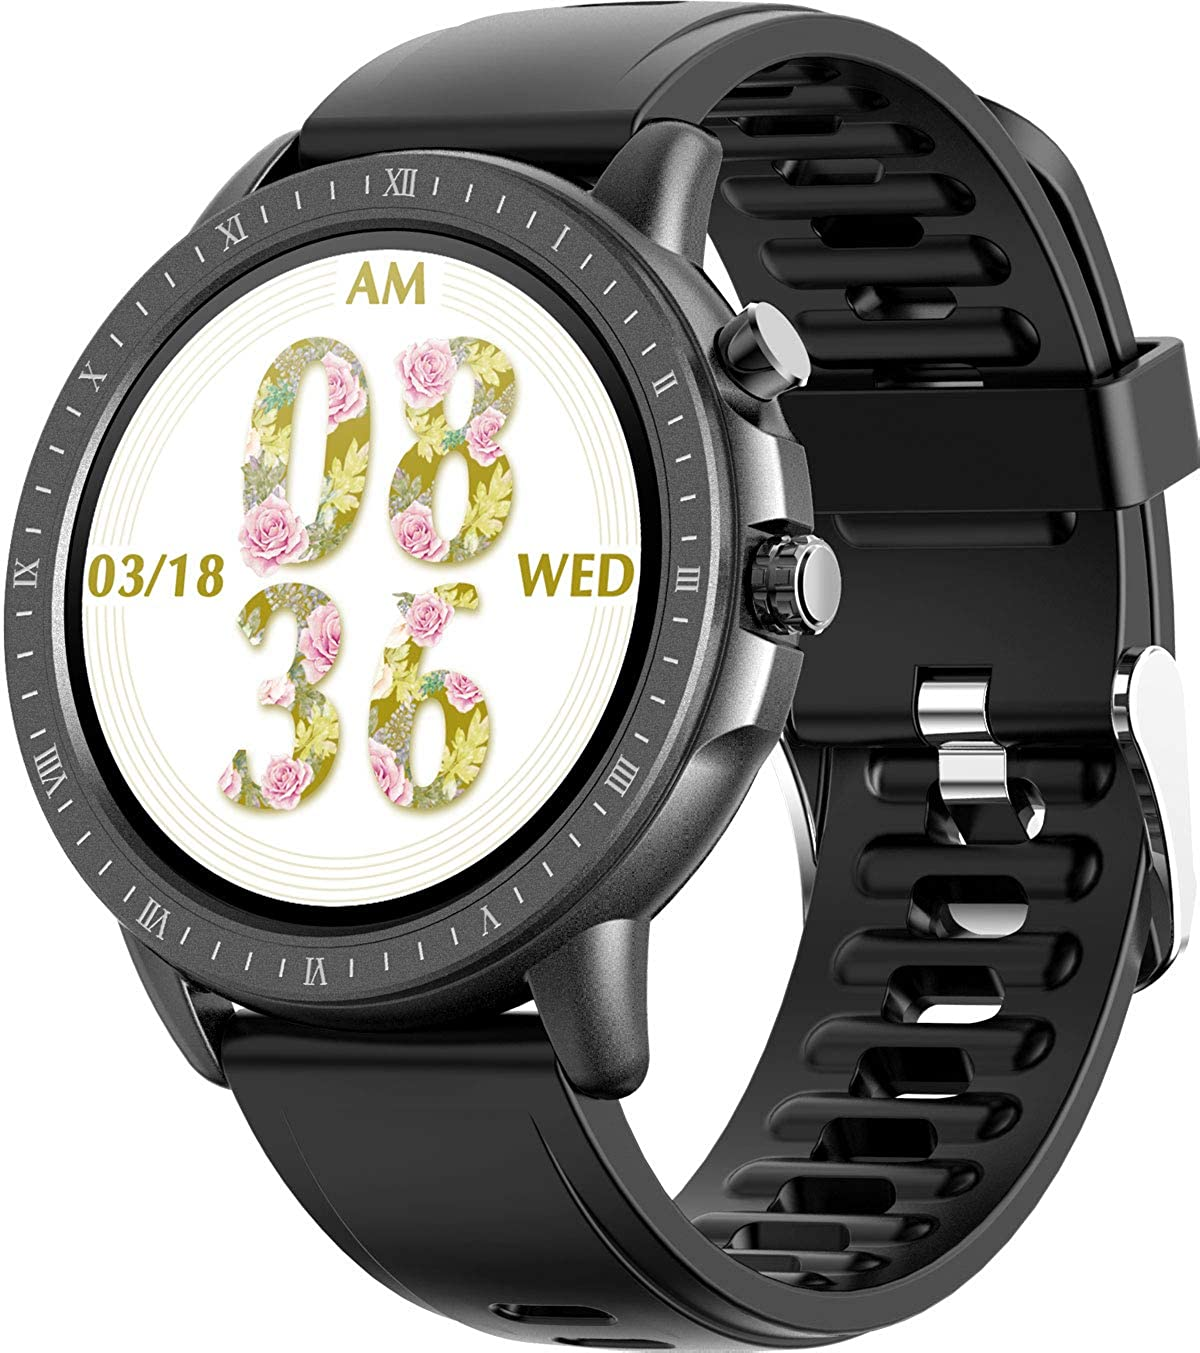 Fitness Activity Tracker Smart Watch Full Touch Exercise Smartwatch with Sleep Tracking Calorie Counter Pedometer Weather Stopwatch Pink